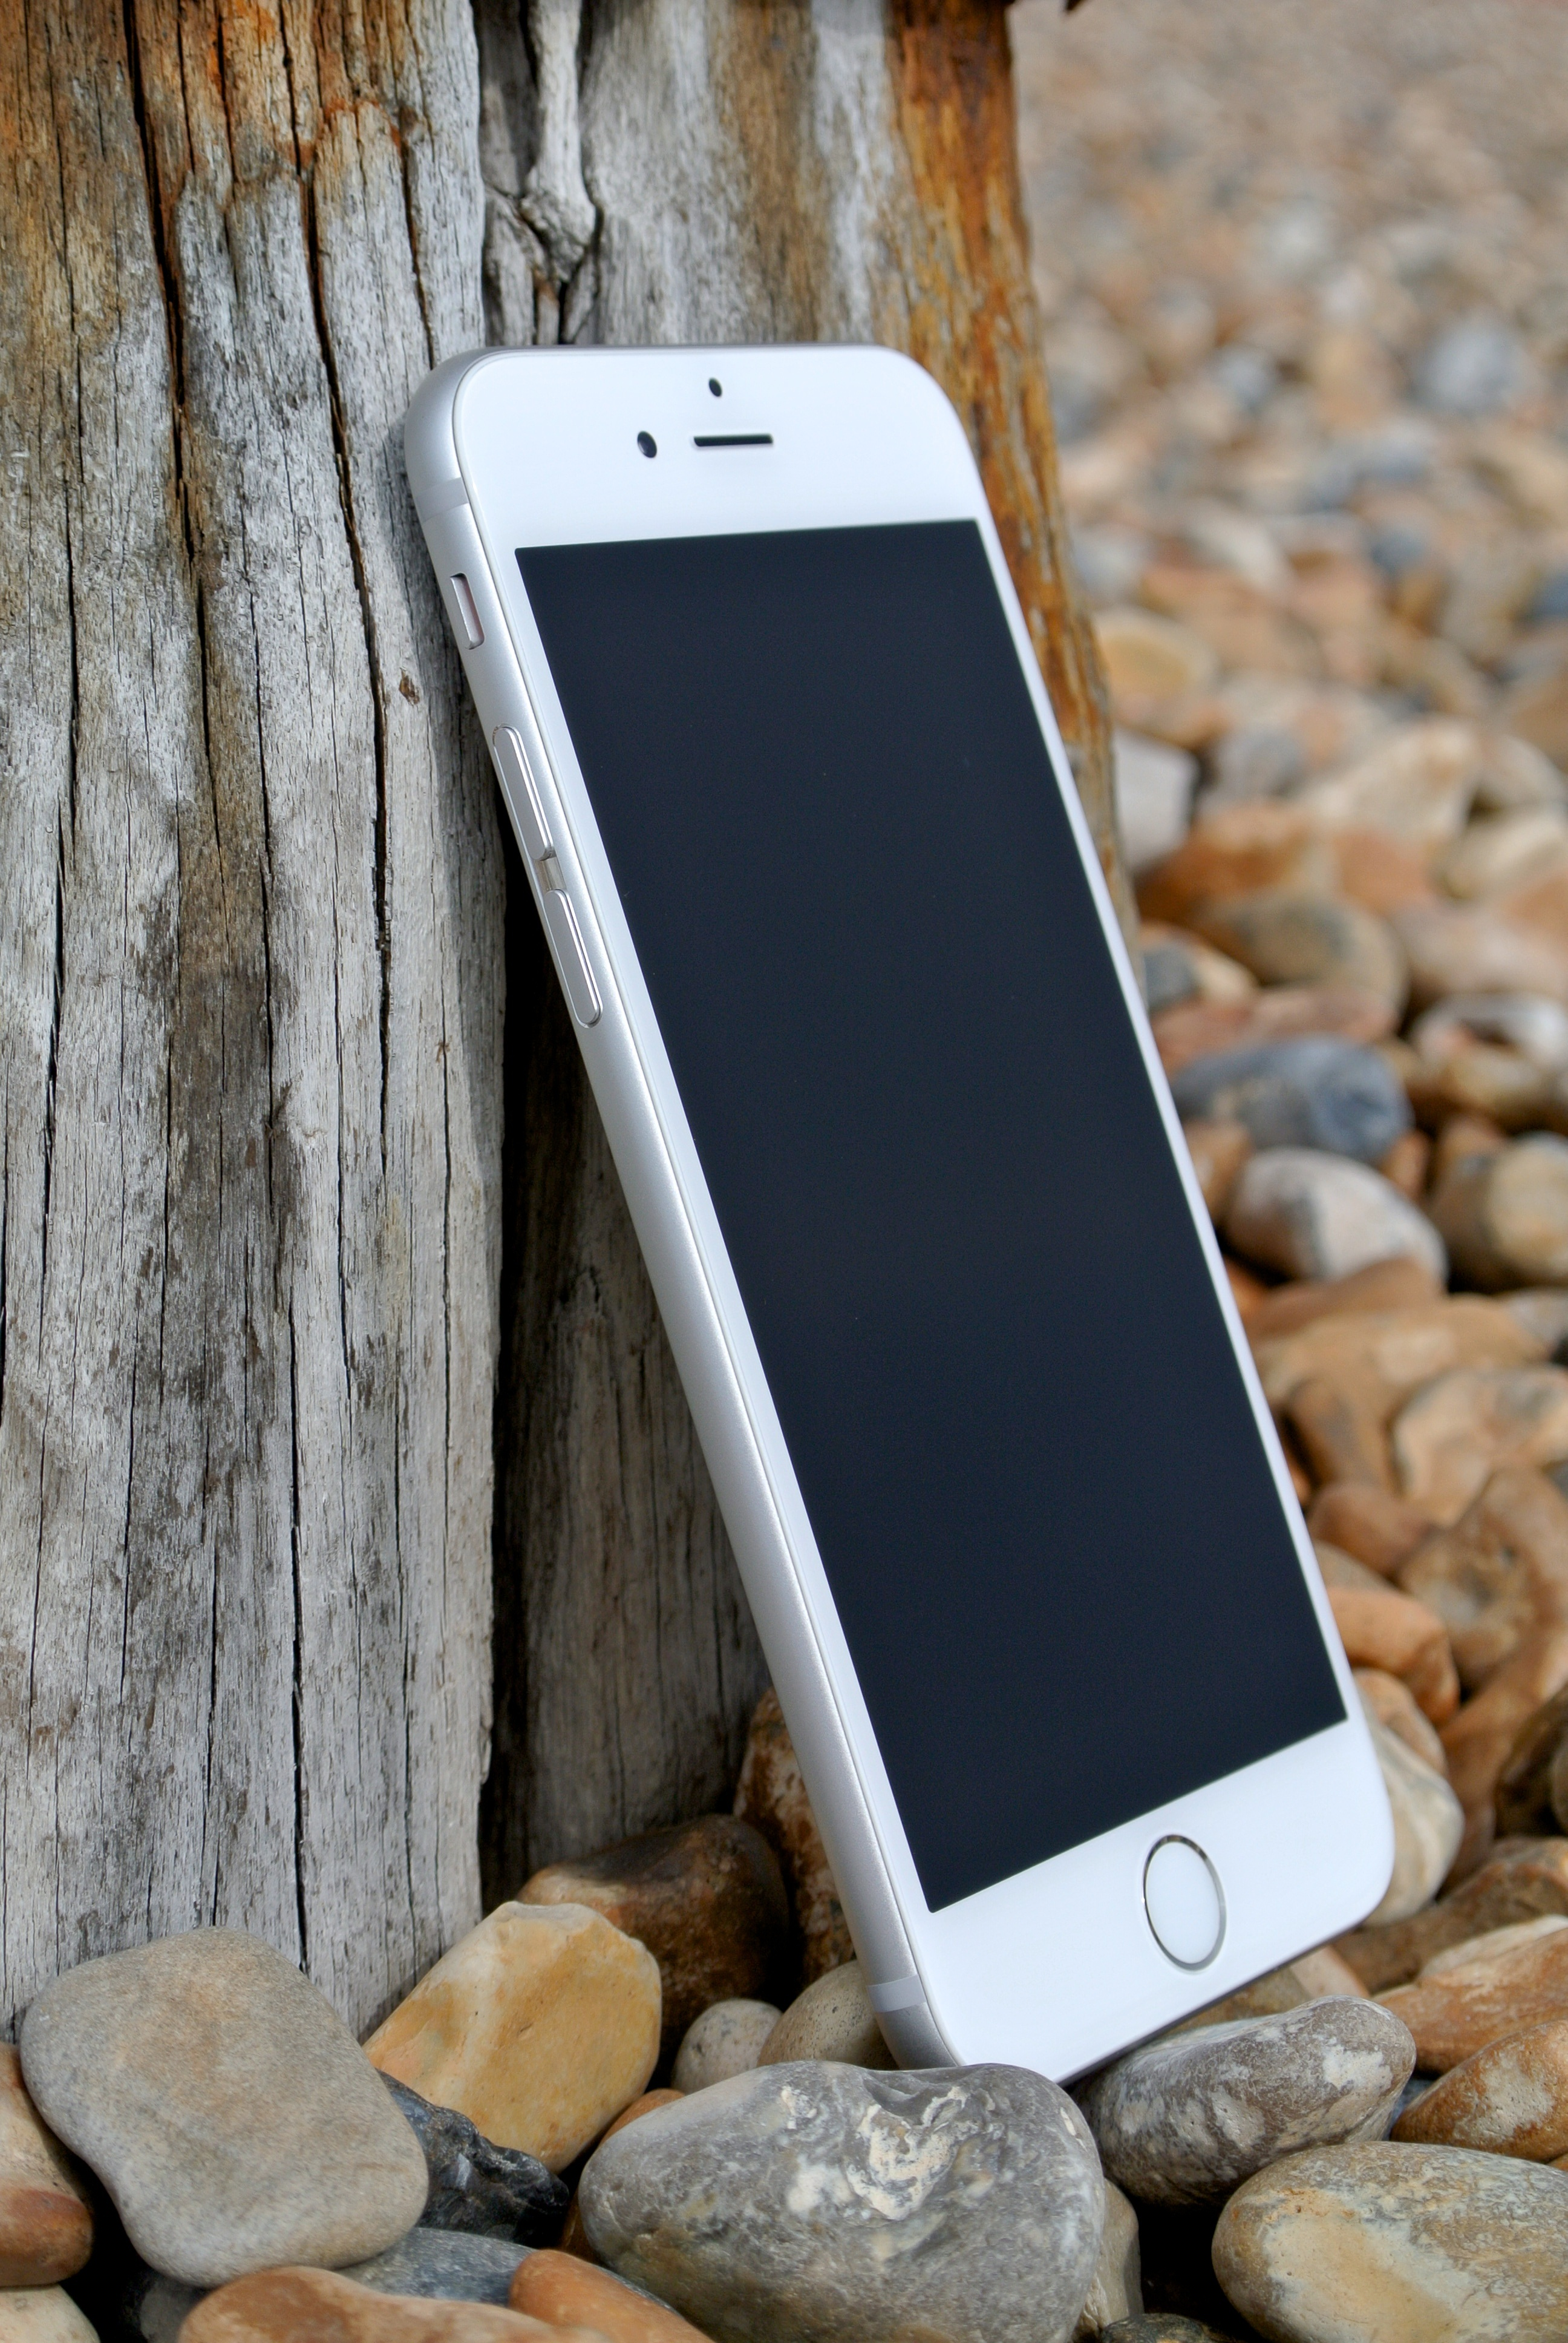 Silver Iphone 6  C2 B7 Free Stock Photo